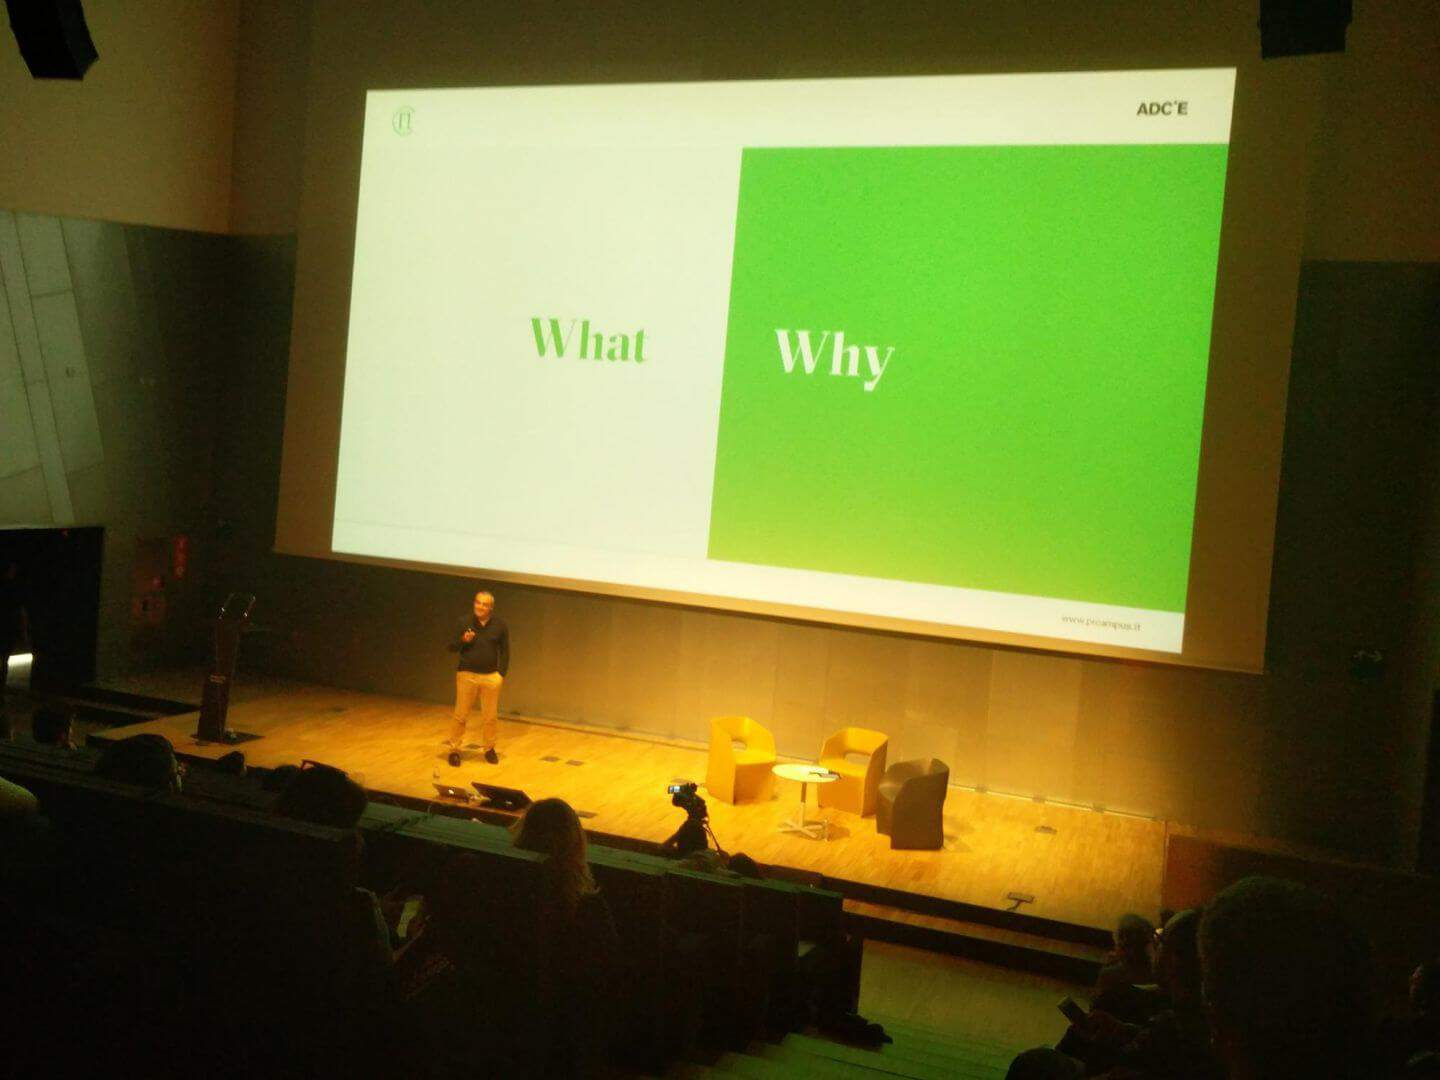 Marco Trombetti from Pi Campus on stage at ADCE European Creativity Festival